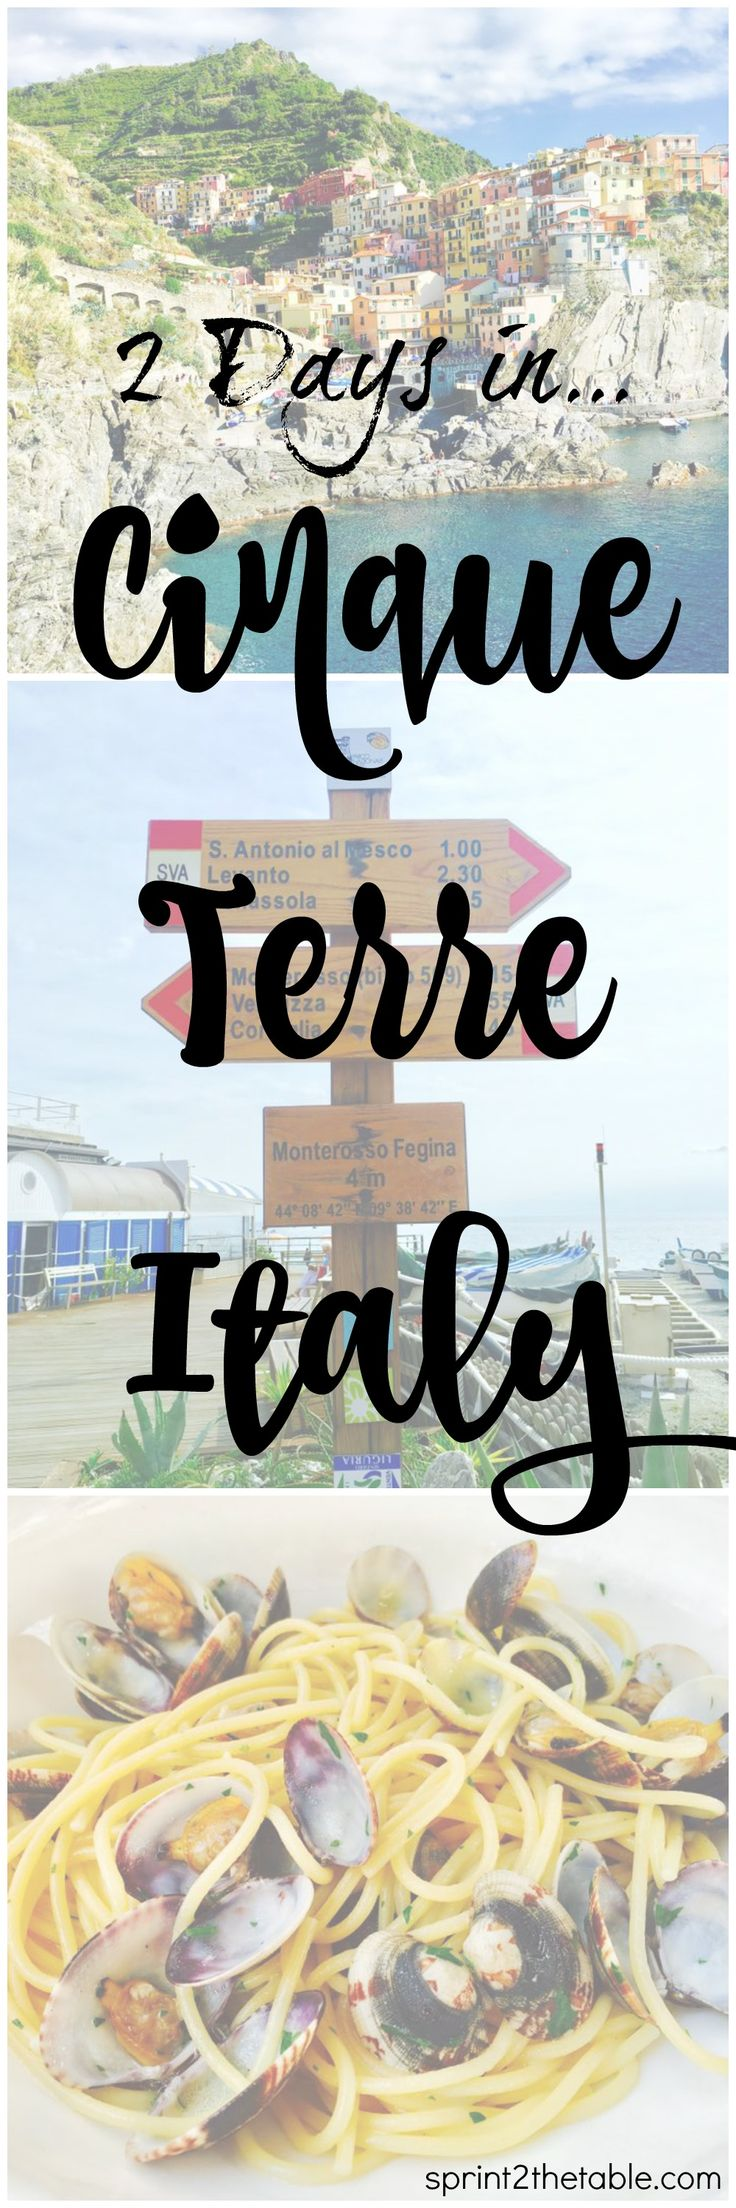 How to spend the perfect 2 days exploring, hiking, and eating your way through Cinque Terre, Italy!